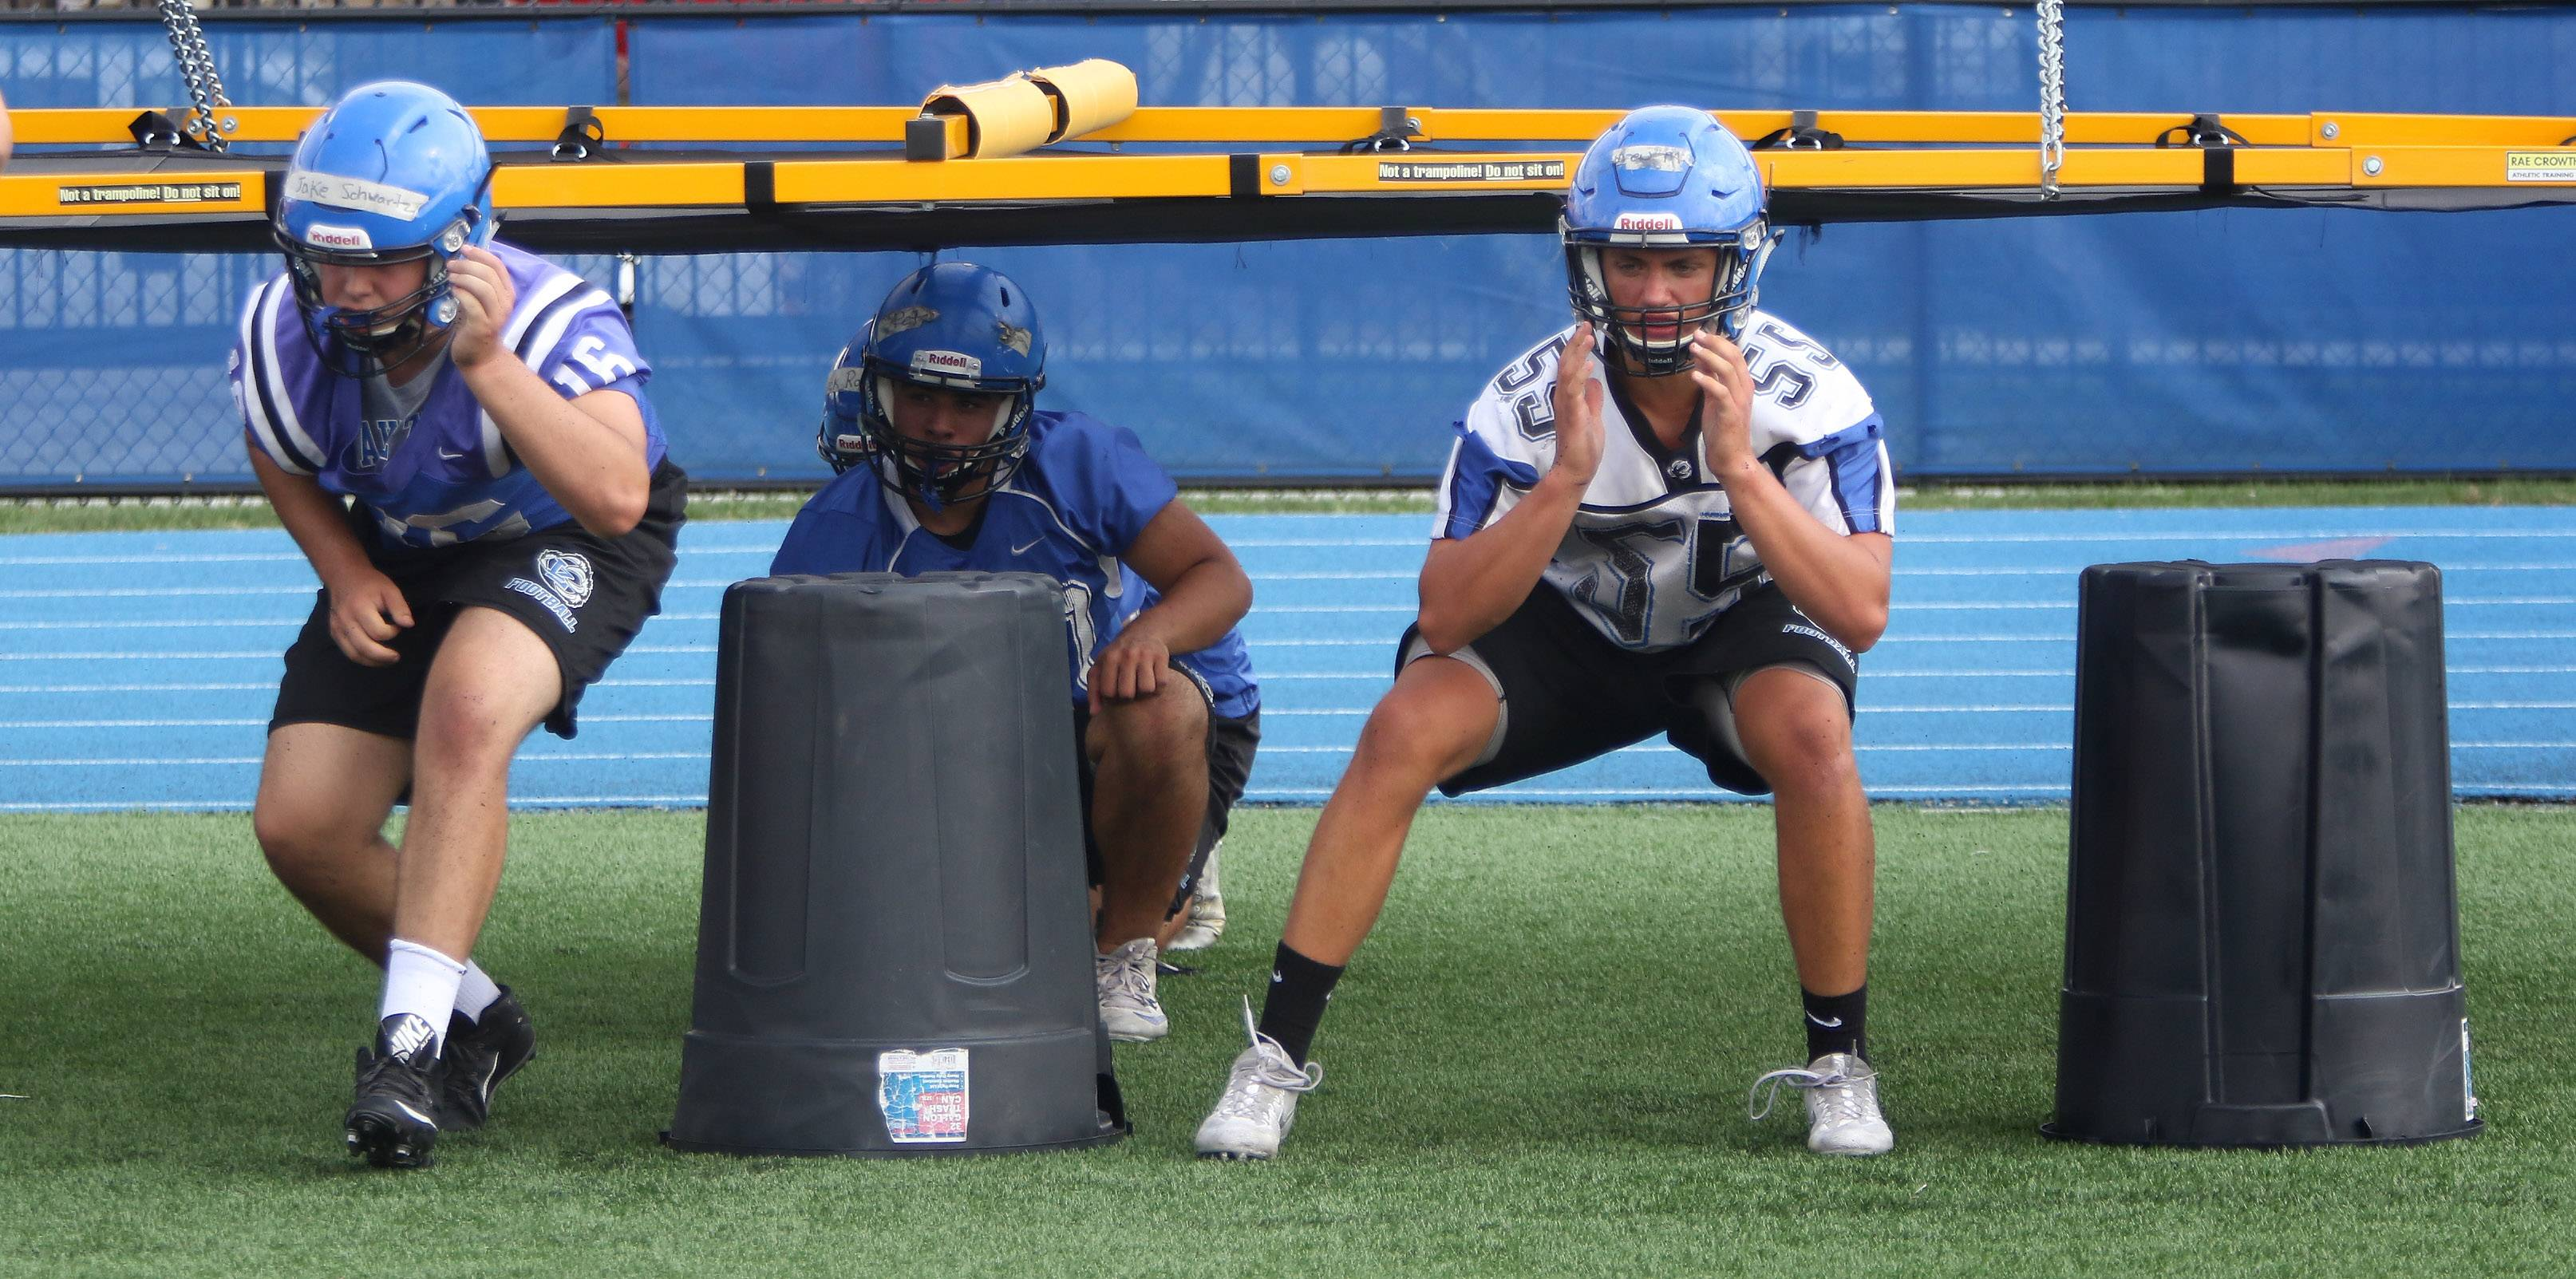 Jake Schwartz, left, and Andrew Miller go through blocking drills during the first day of football practice at Lake Zurich High School on Monday.